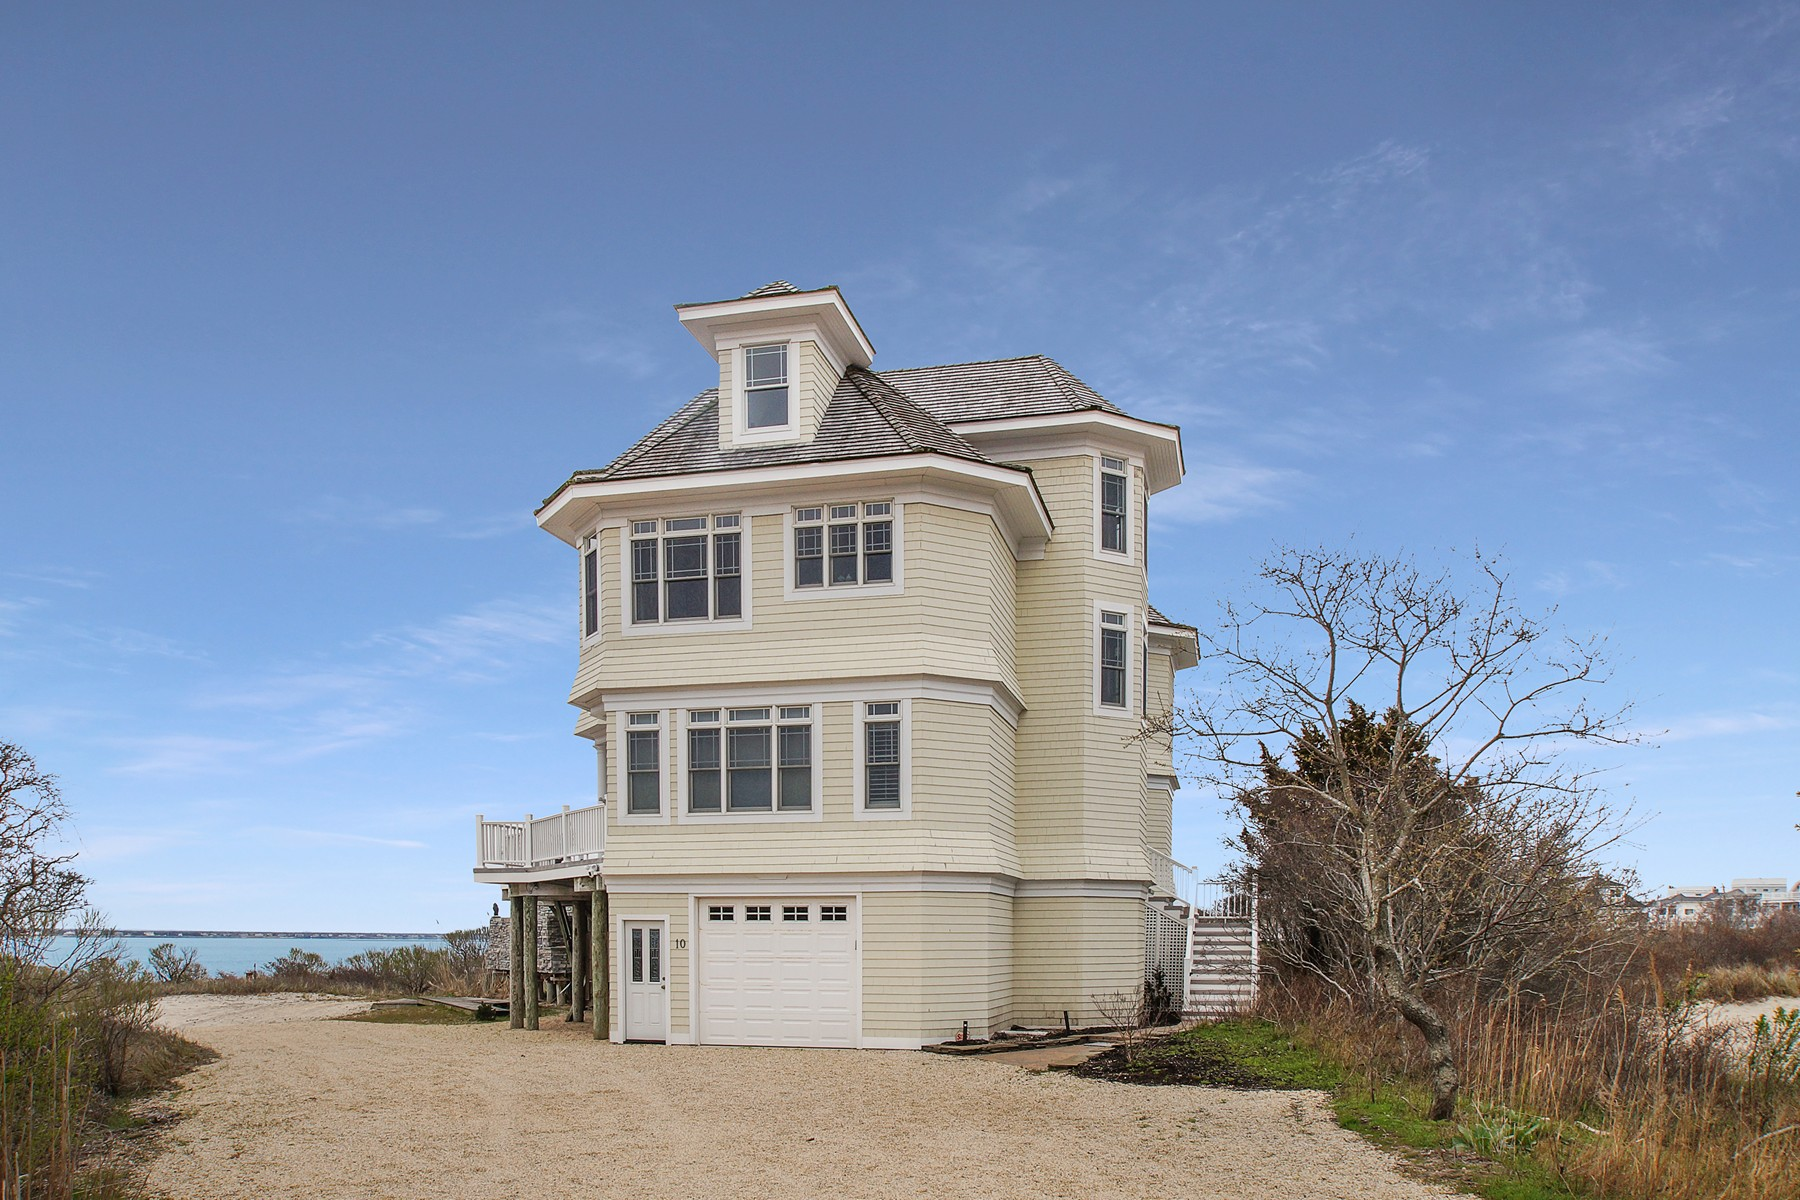 Single Family Homes for Active at Westhampton Dune 10 Widgeon Way Westhampton Dunes, New York 11978 United States